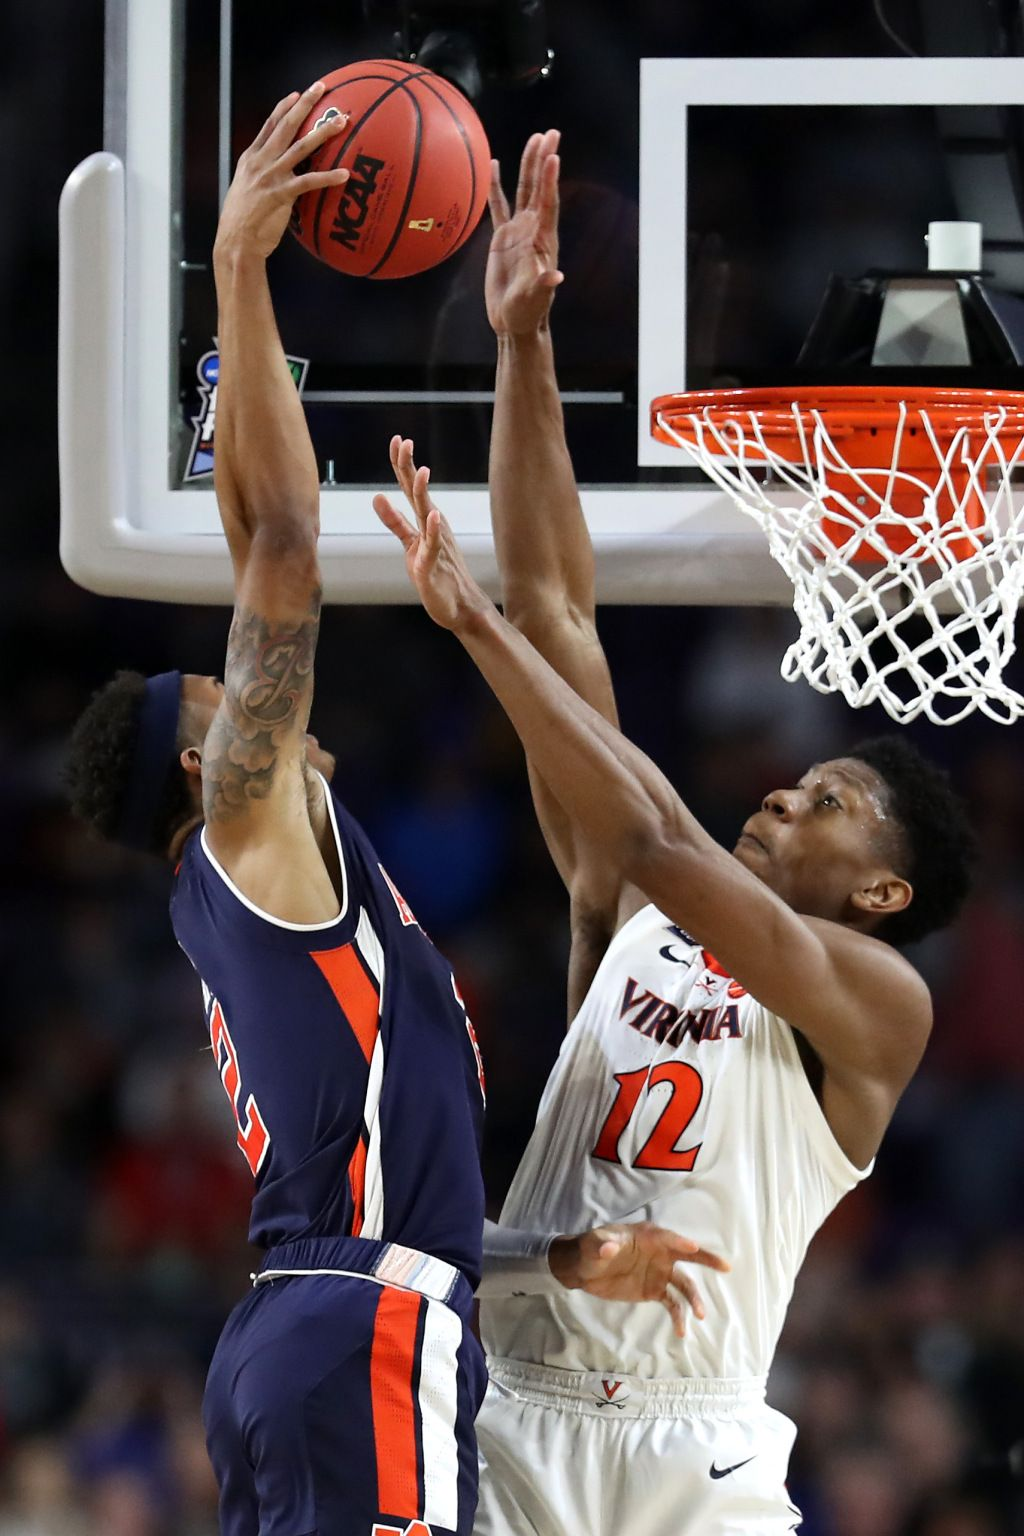 WATCH De'Andre Hunter with the block of the tournament